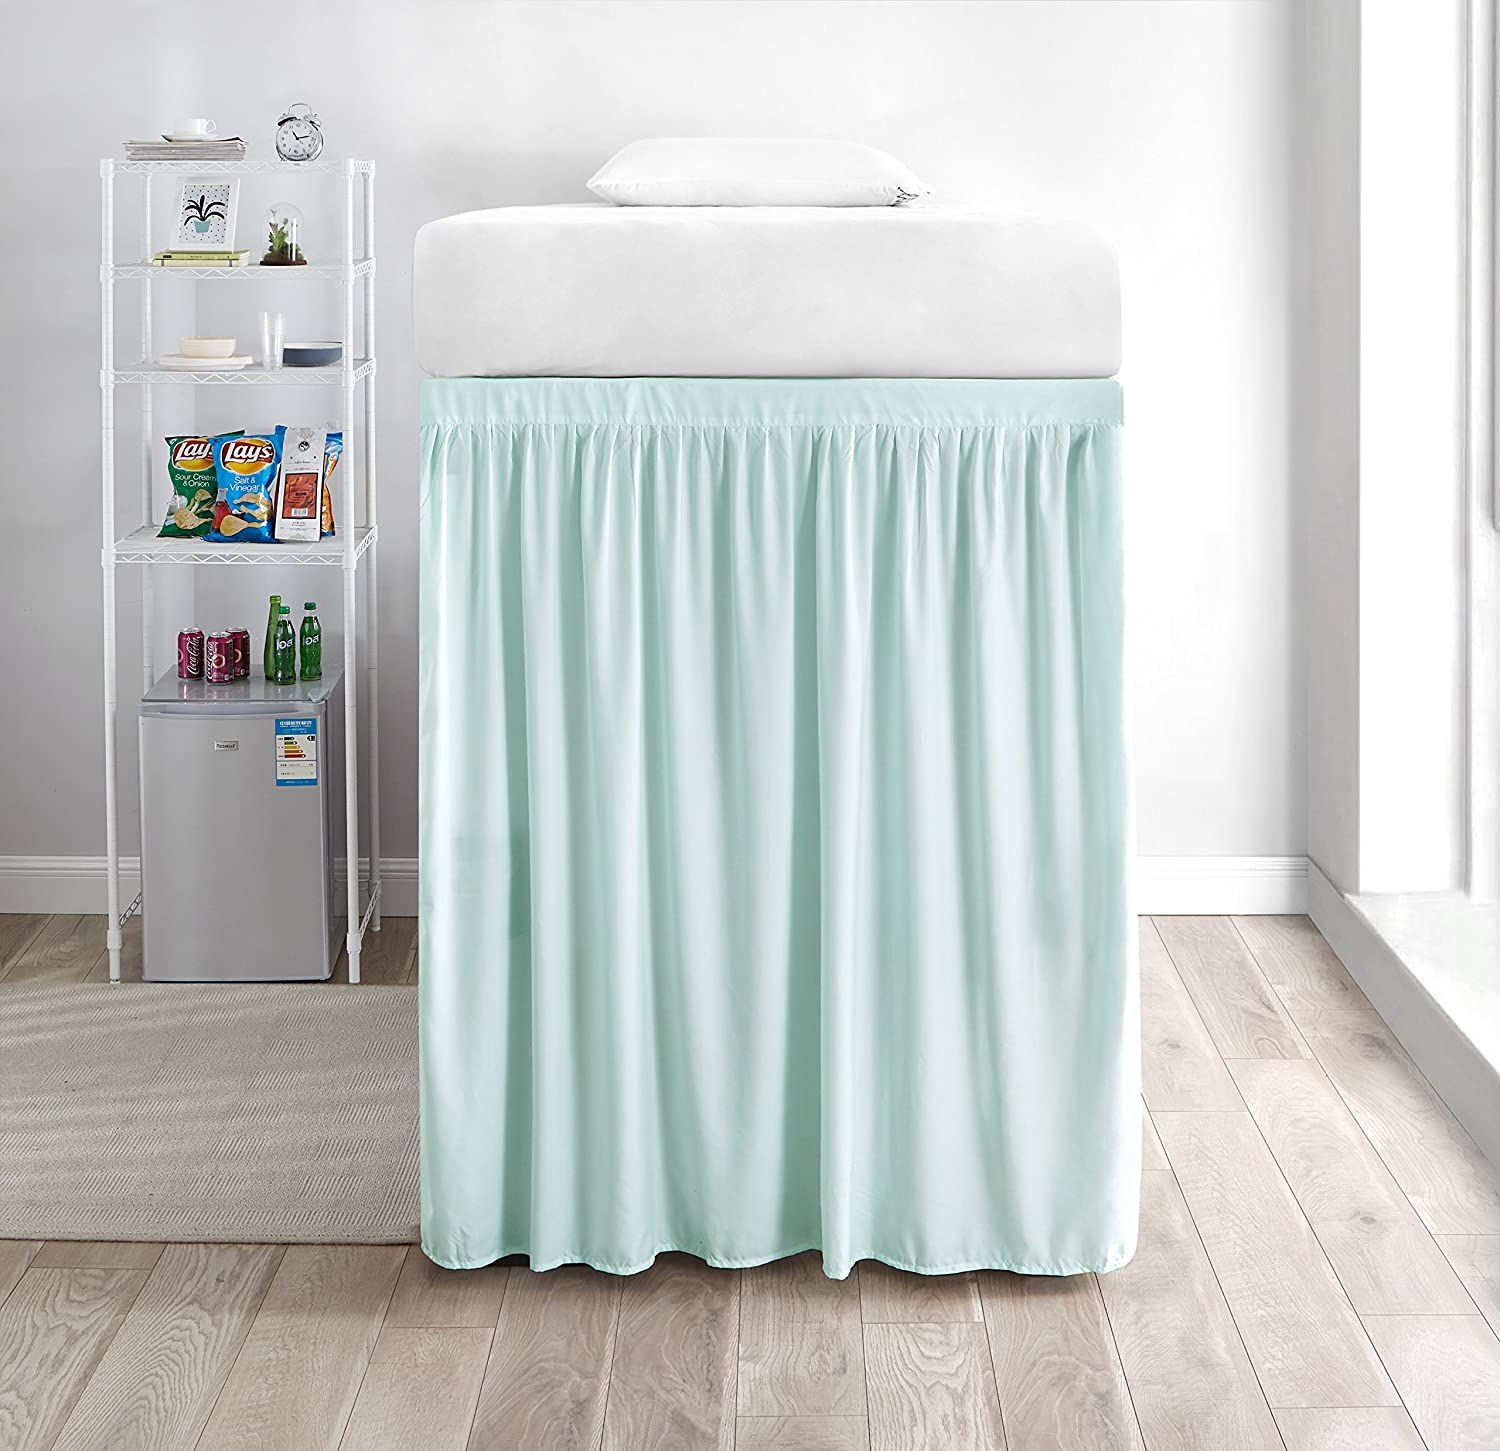 Prime Amazon Com Extended Dorm Sized Bed Skirt Panel With Ties 1 Download Free Architecture Designs Scobabritishbridgeorg